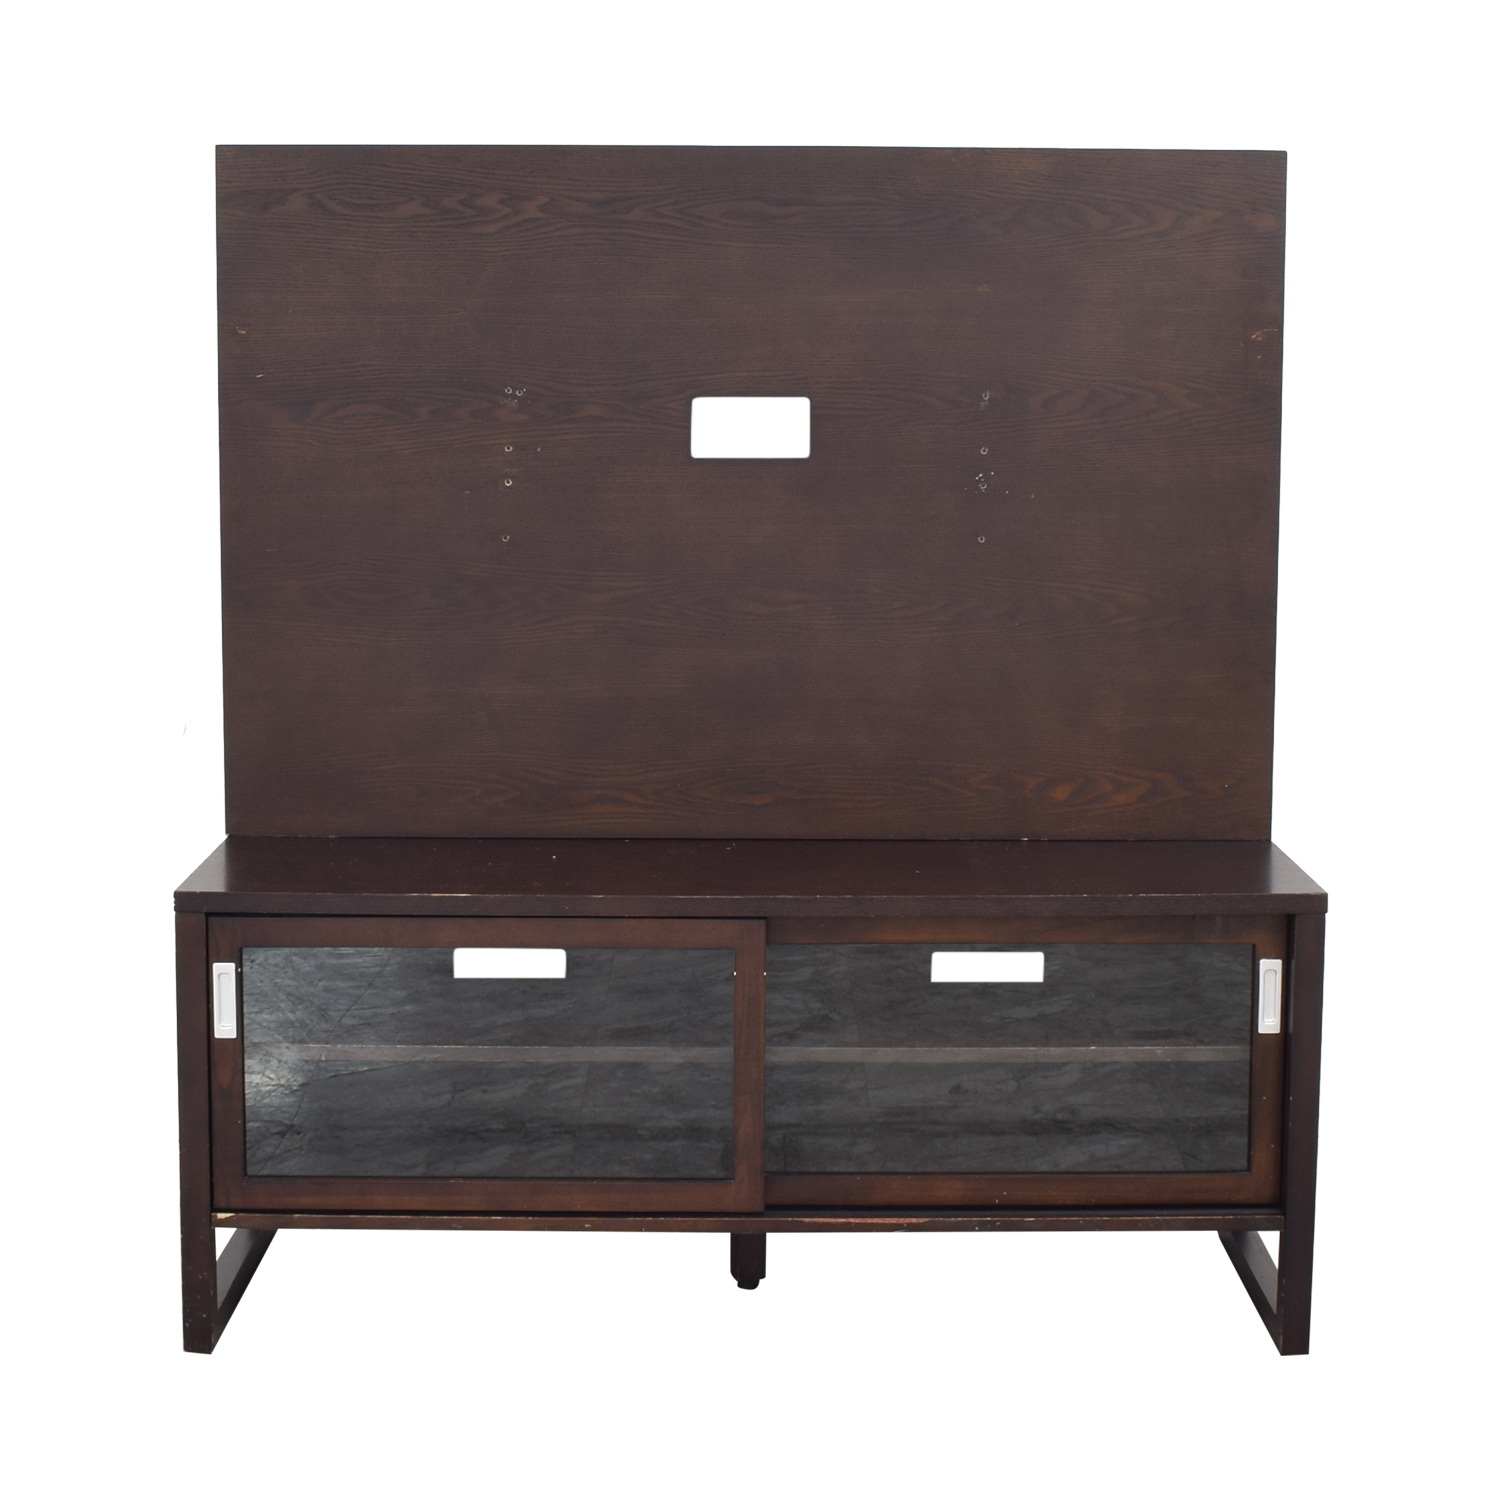 Crate & Barrel Crate & Barrel Entertainment Console with Back Panel on sale